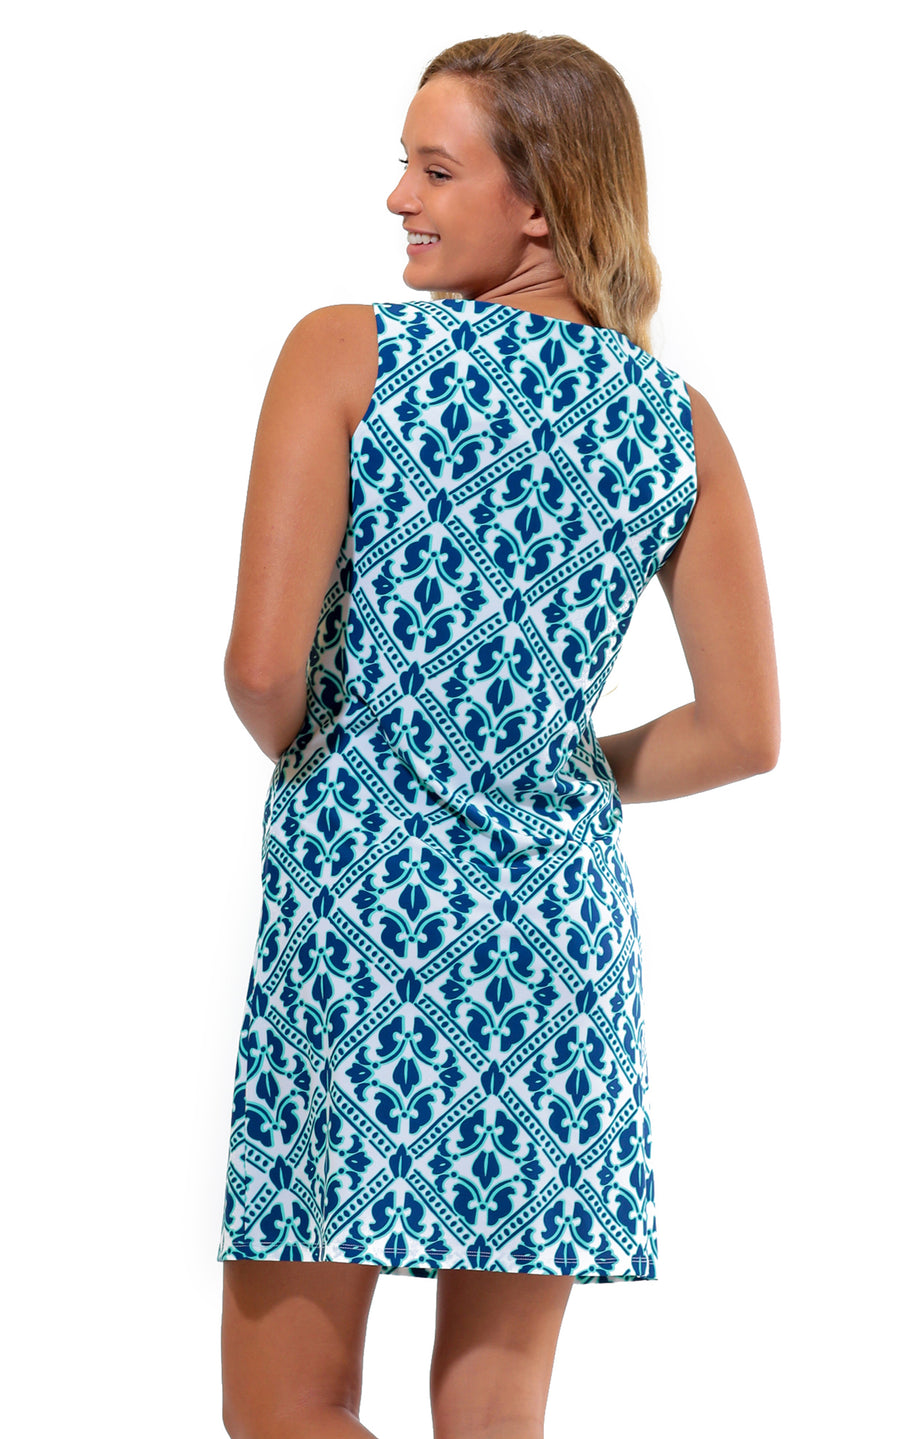 Aqua Trellis West Ave Shift Dress - FINAL SALE